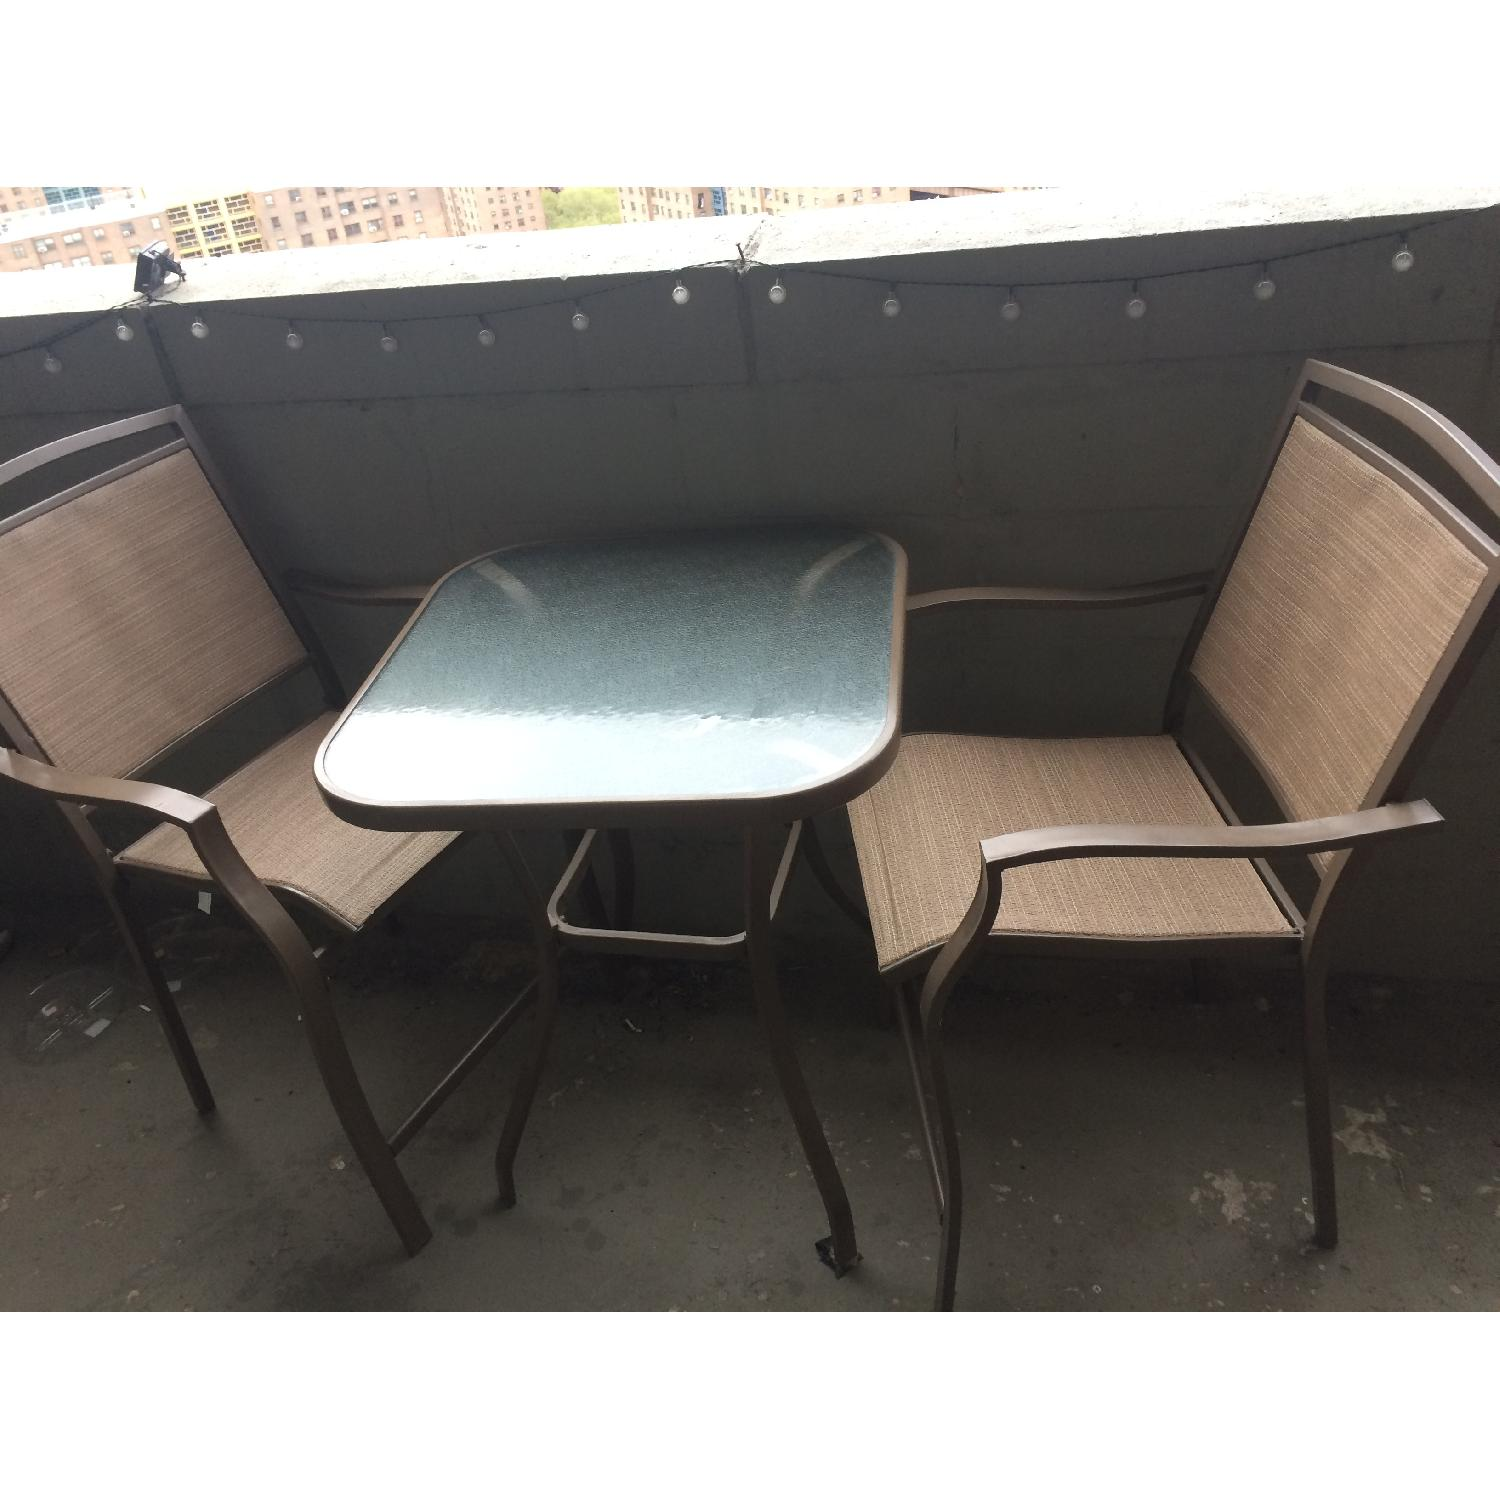 Patio Bar Table w/ 2 Chairs - image-1